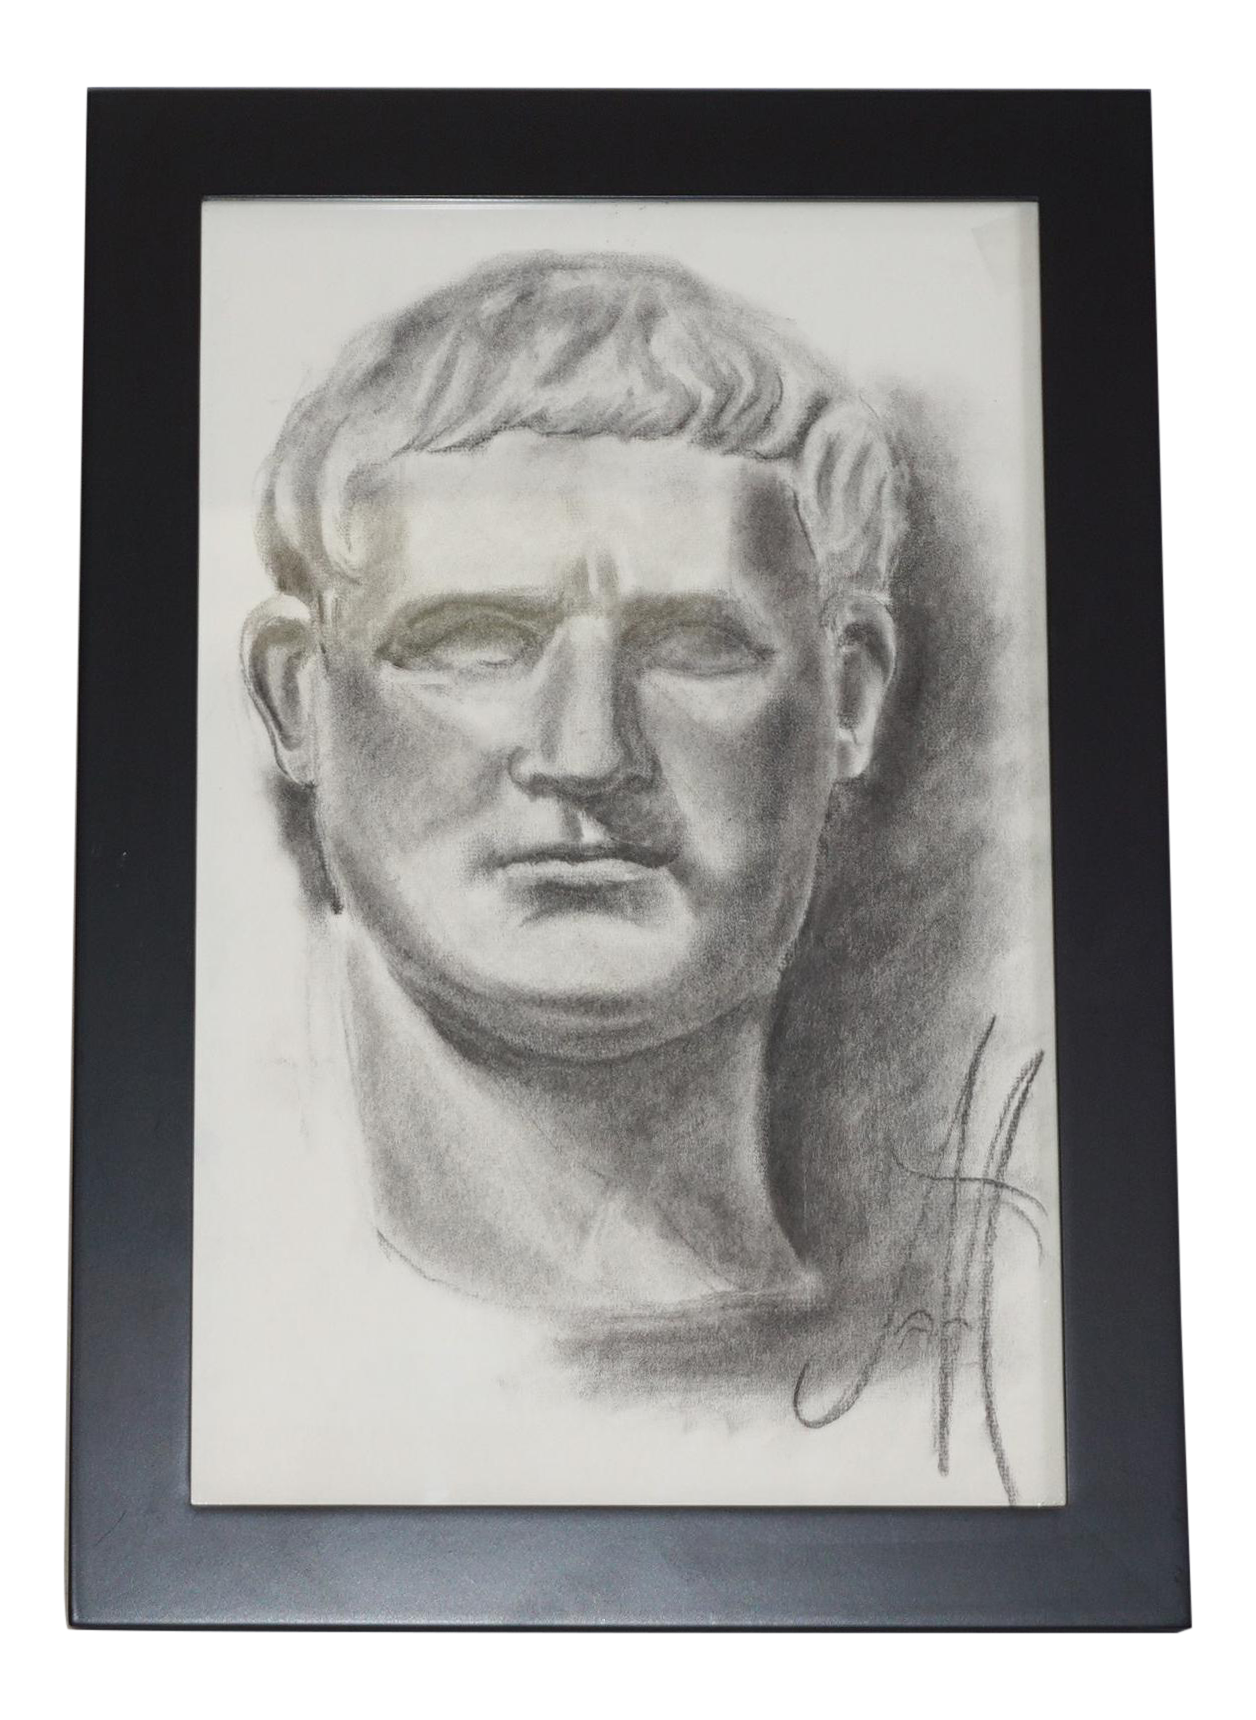 Self drawing charcoal. Vintage bust sketch chairish